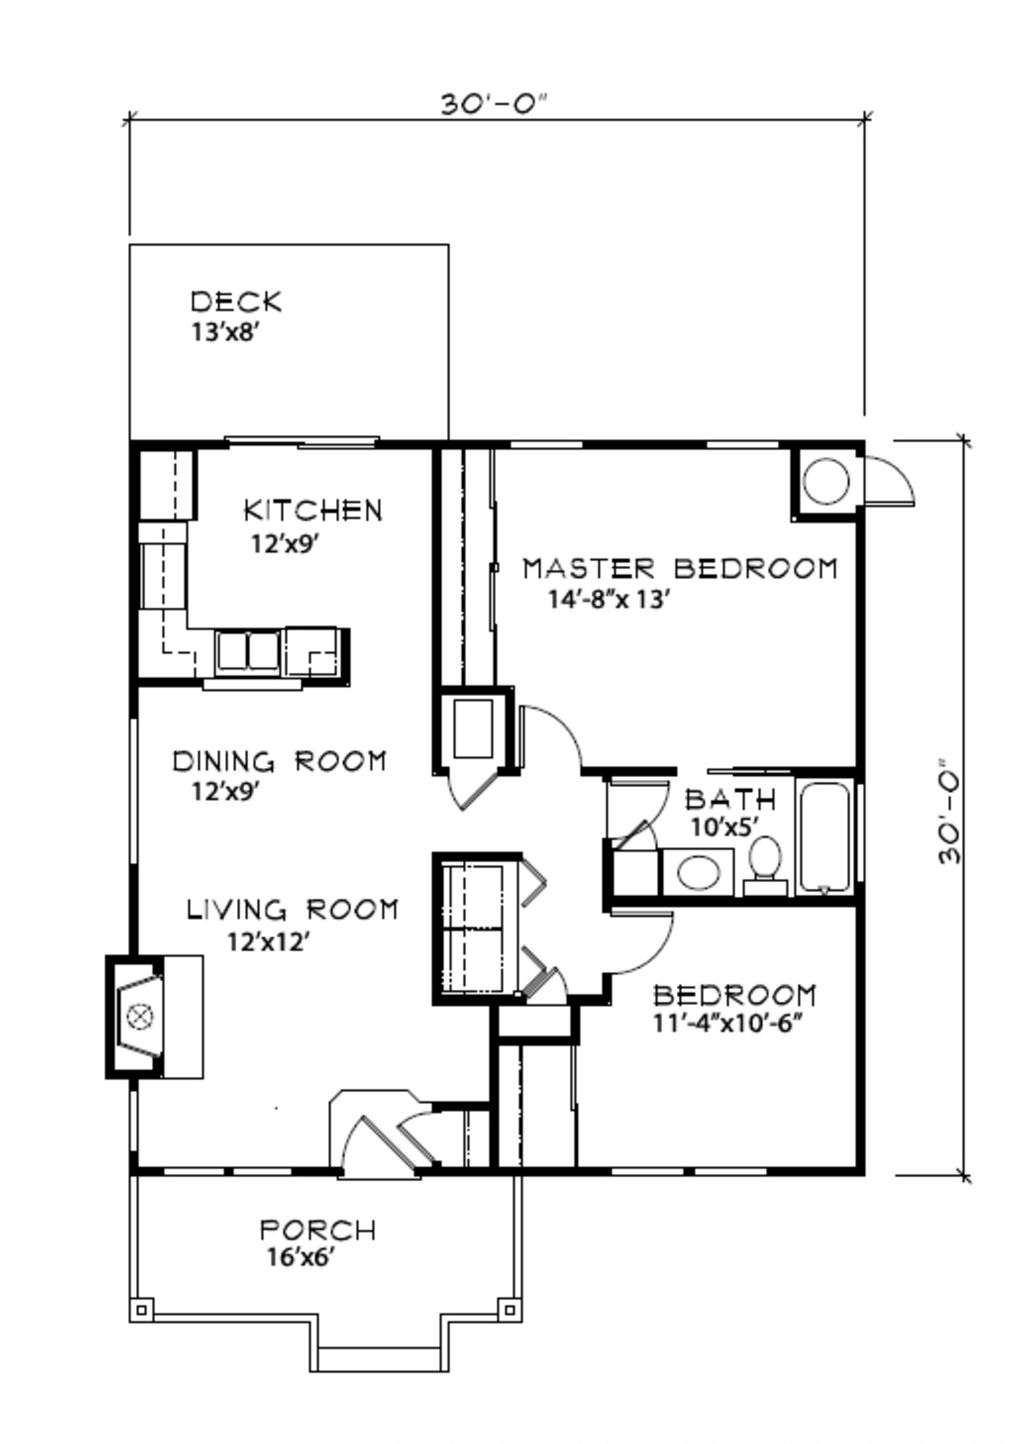 Cottage Style House Plan 2 Beds 1 Baths 900 Sq Ft 515 19 Main Floor Houseplans